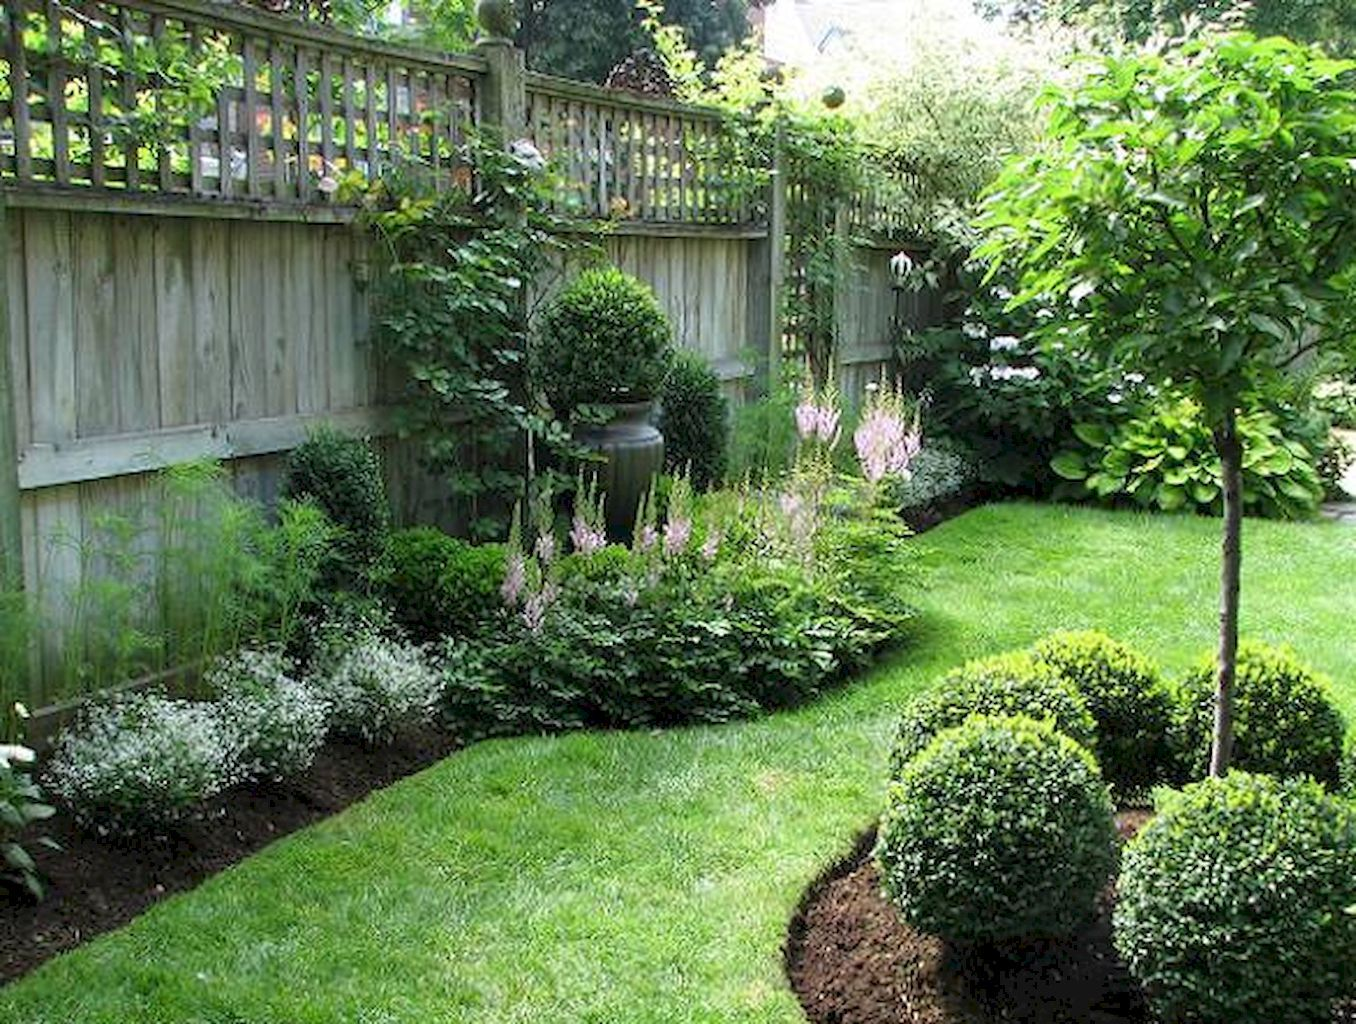 Gorgeous 50 Backyard Privacy Fence Landscaping Ideas On A Budget  Https://homeastern.com/2017/06/21/backyard Privacy Fence Landscaping Ideas  Budget/